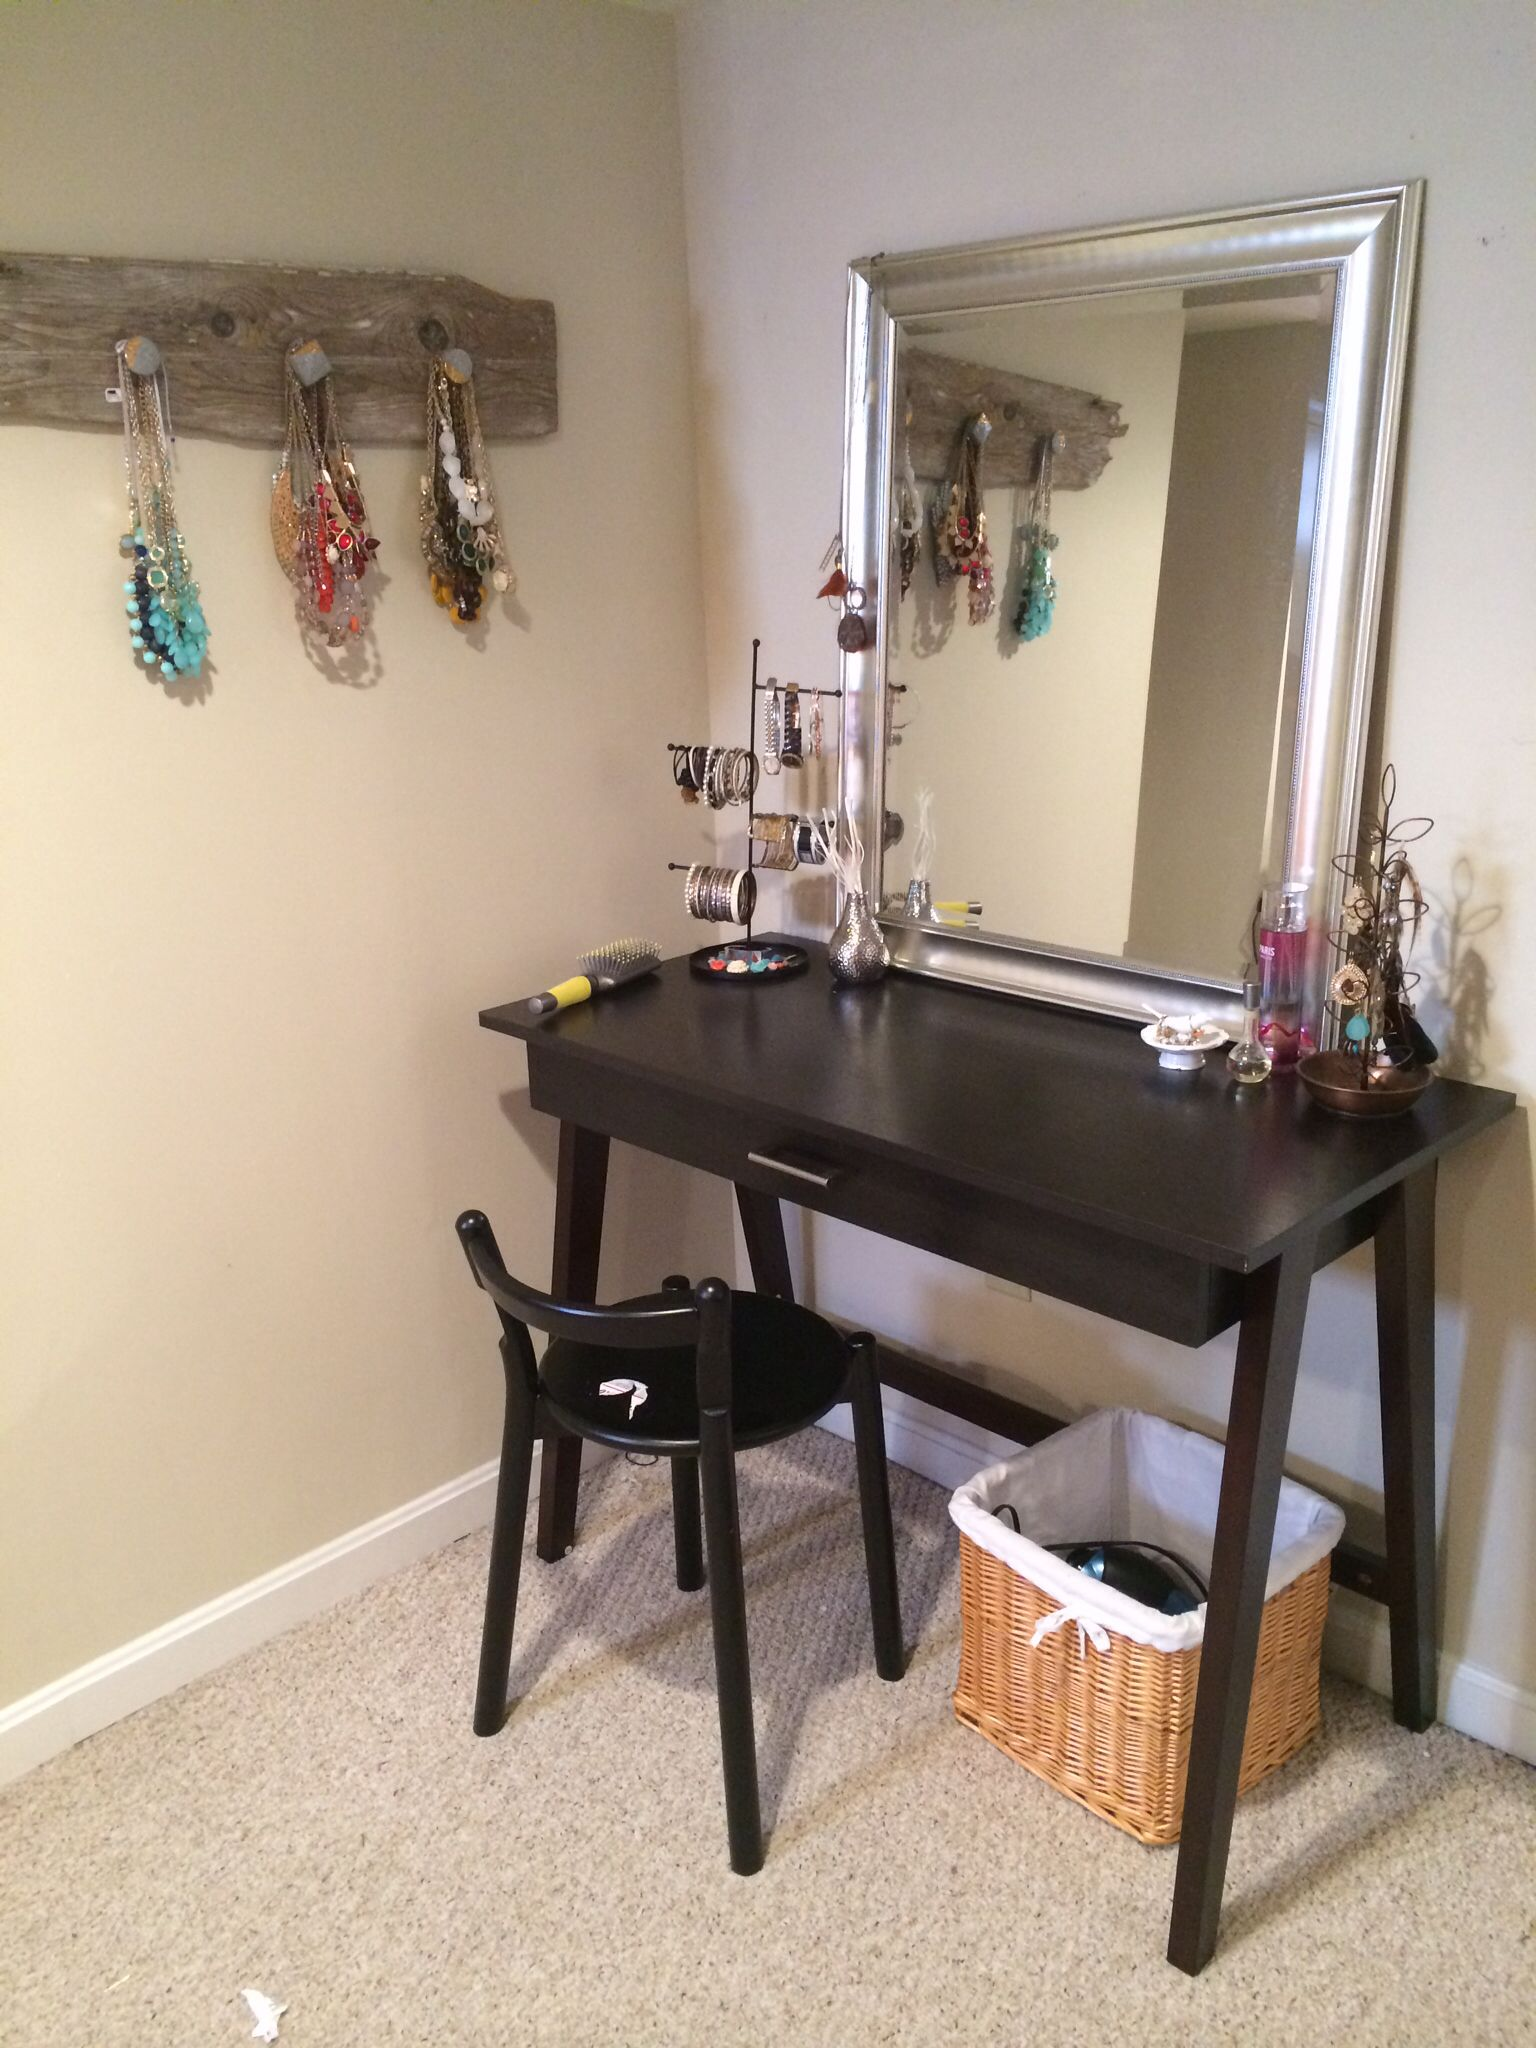 Diy Dressing Table Vanity Using A Desk And Mirror From